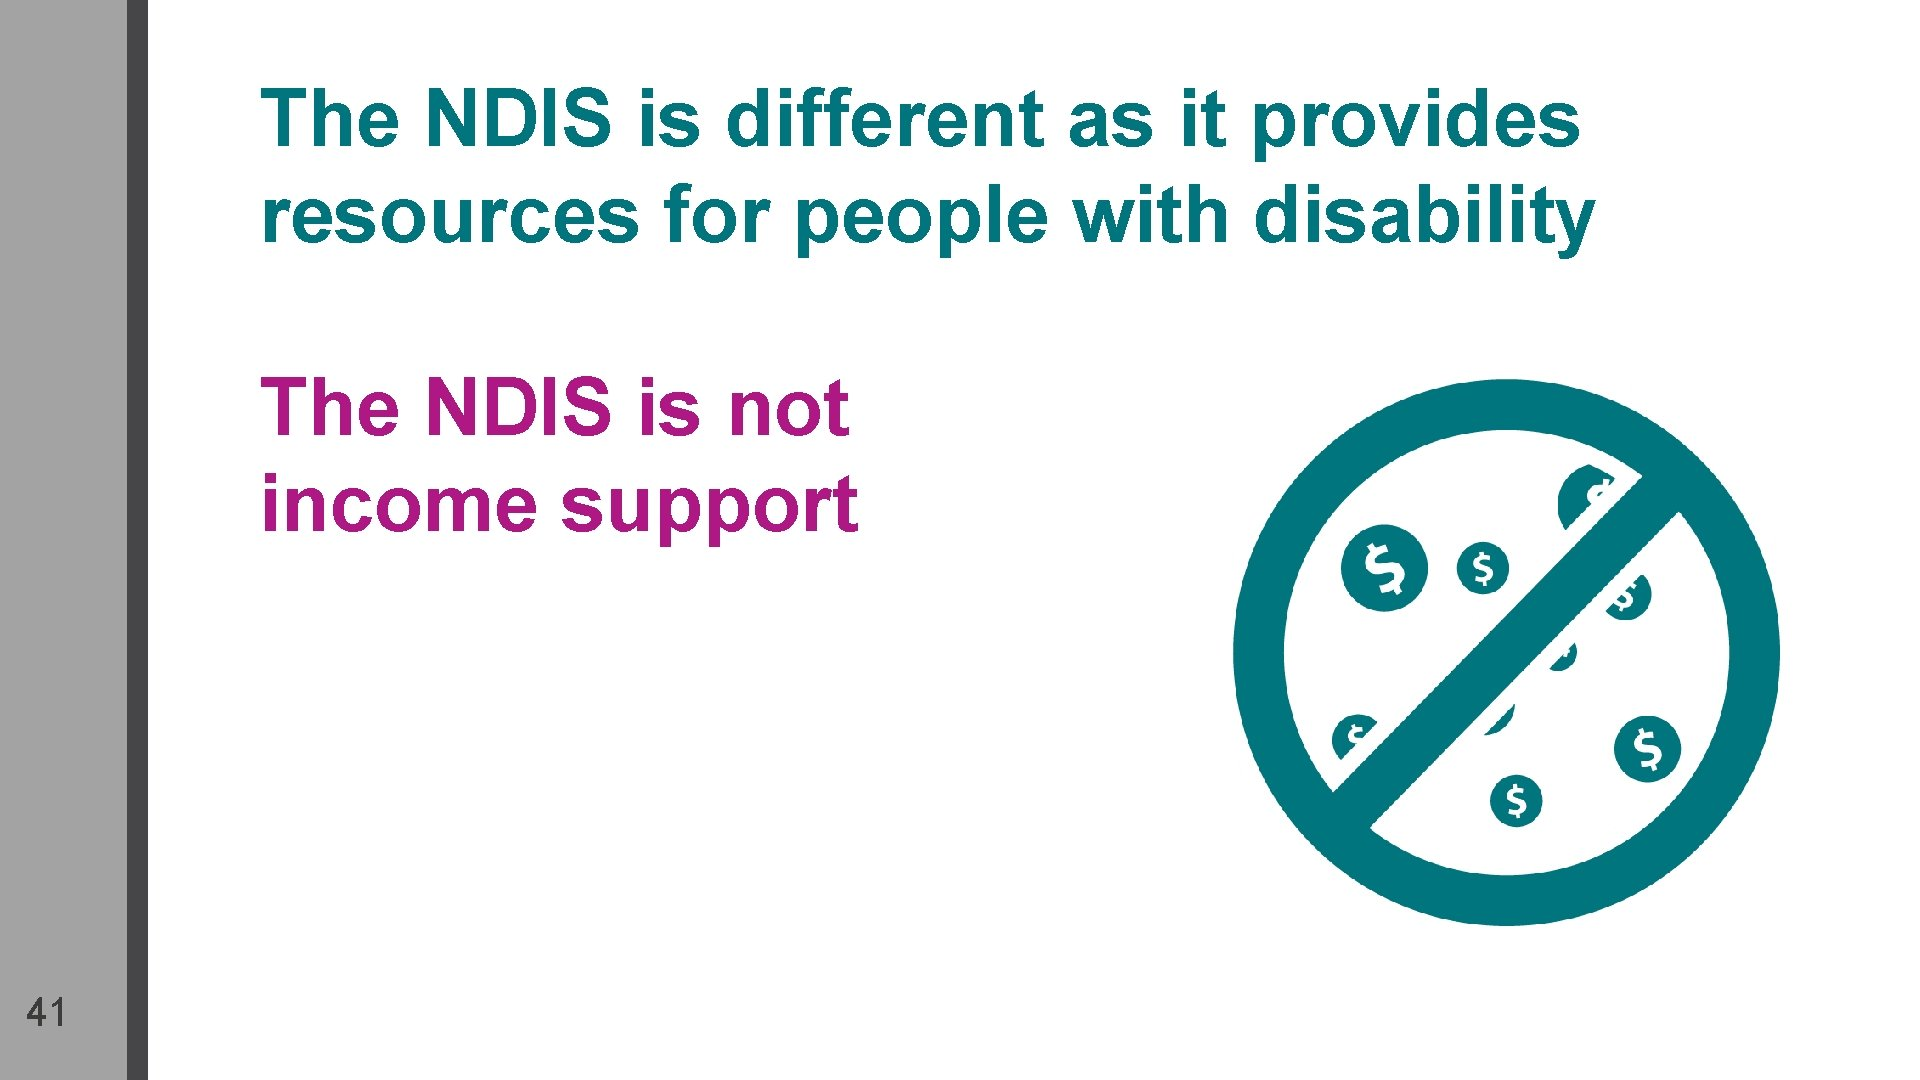 The NDIS is different as it provides resources for people with disability The NDIS